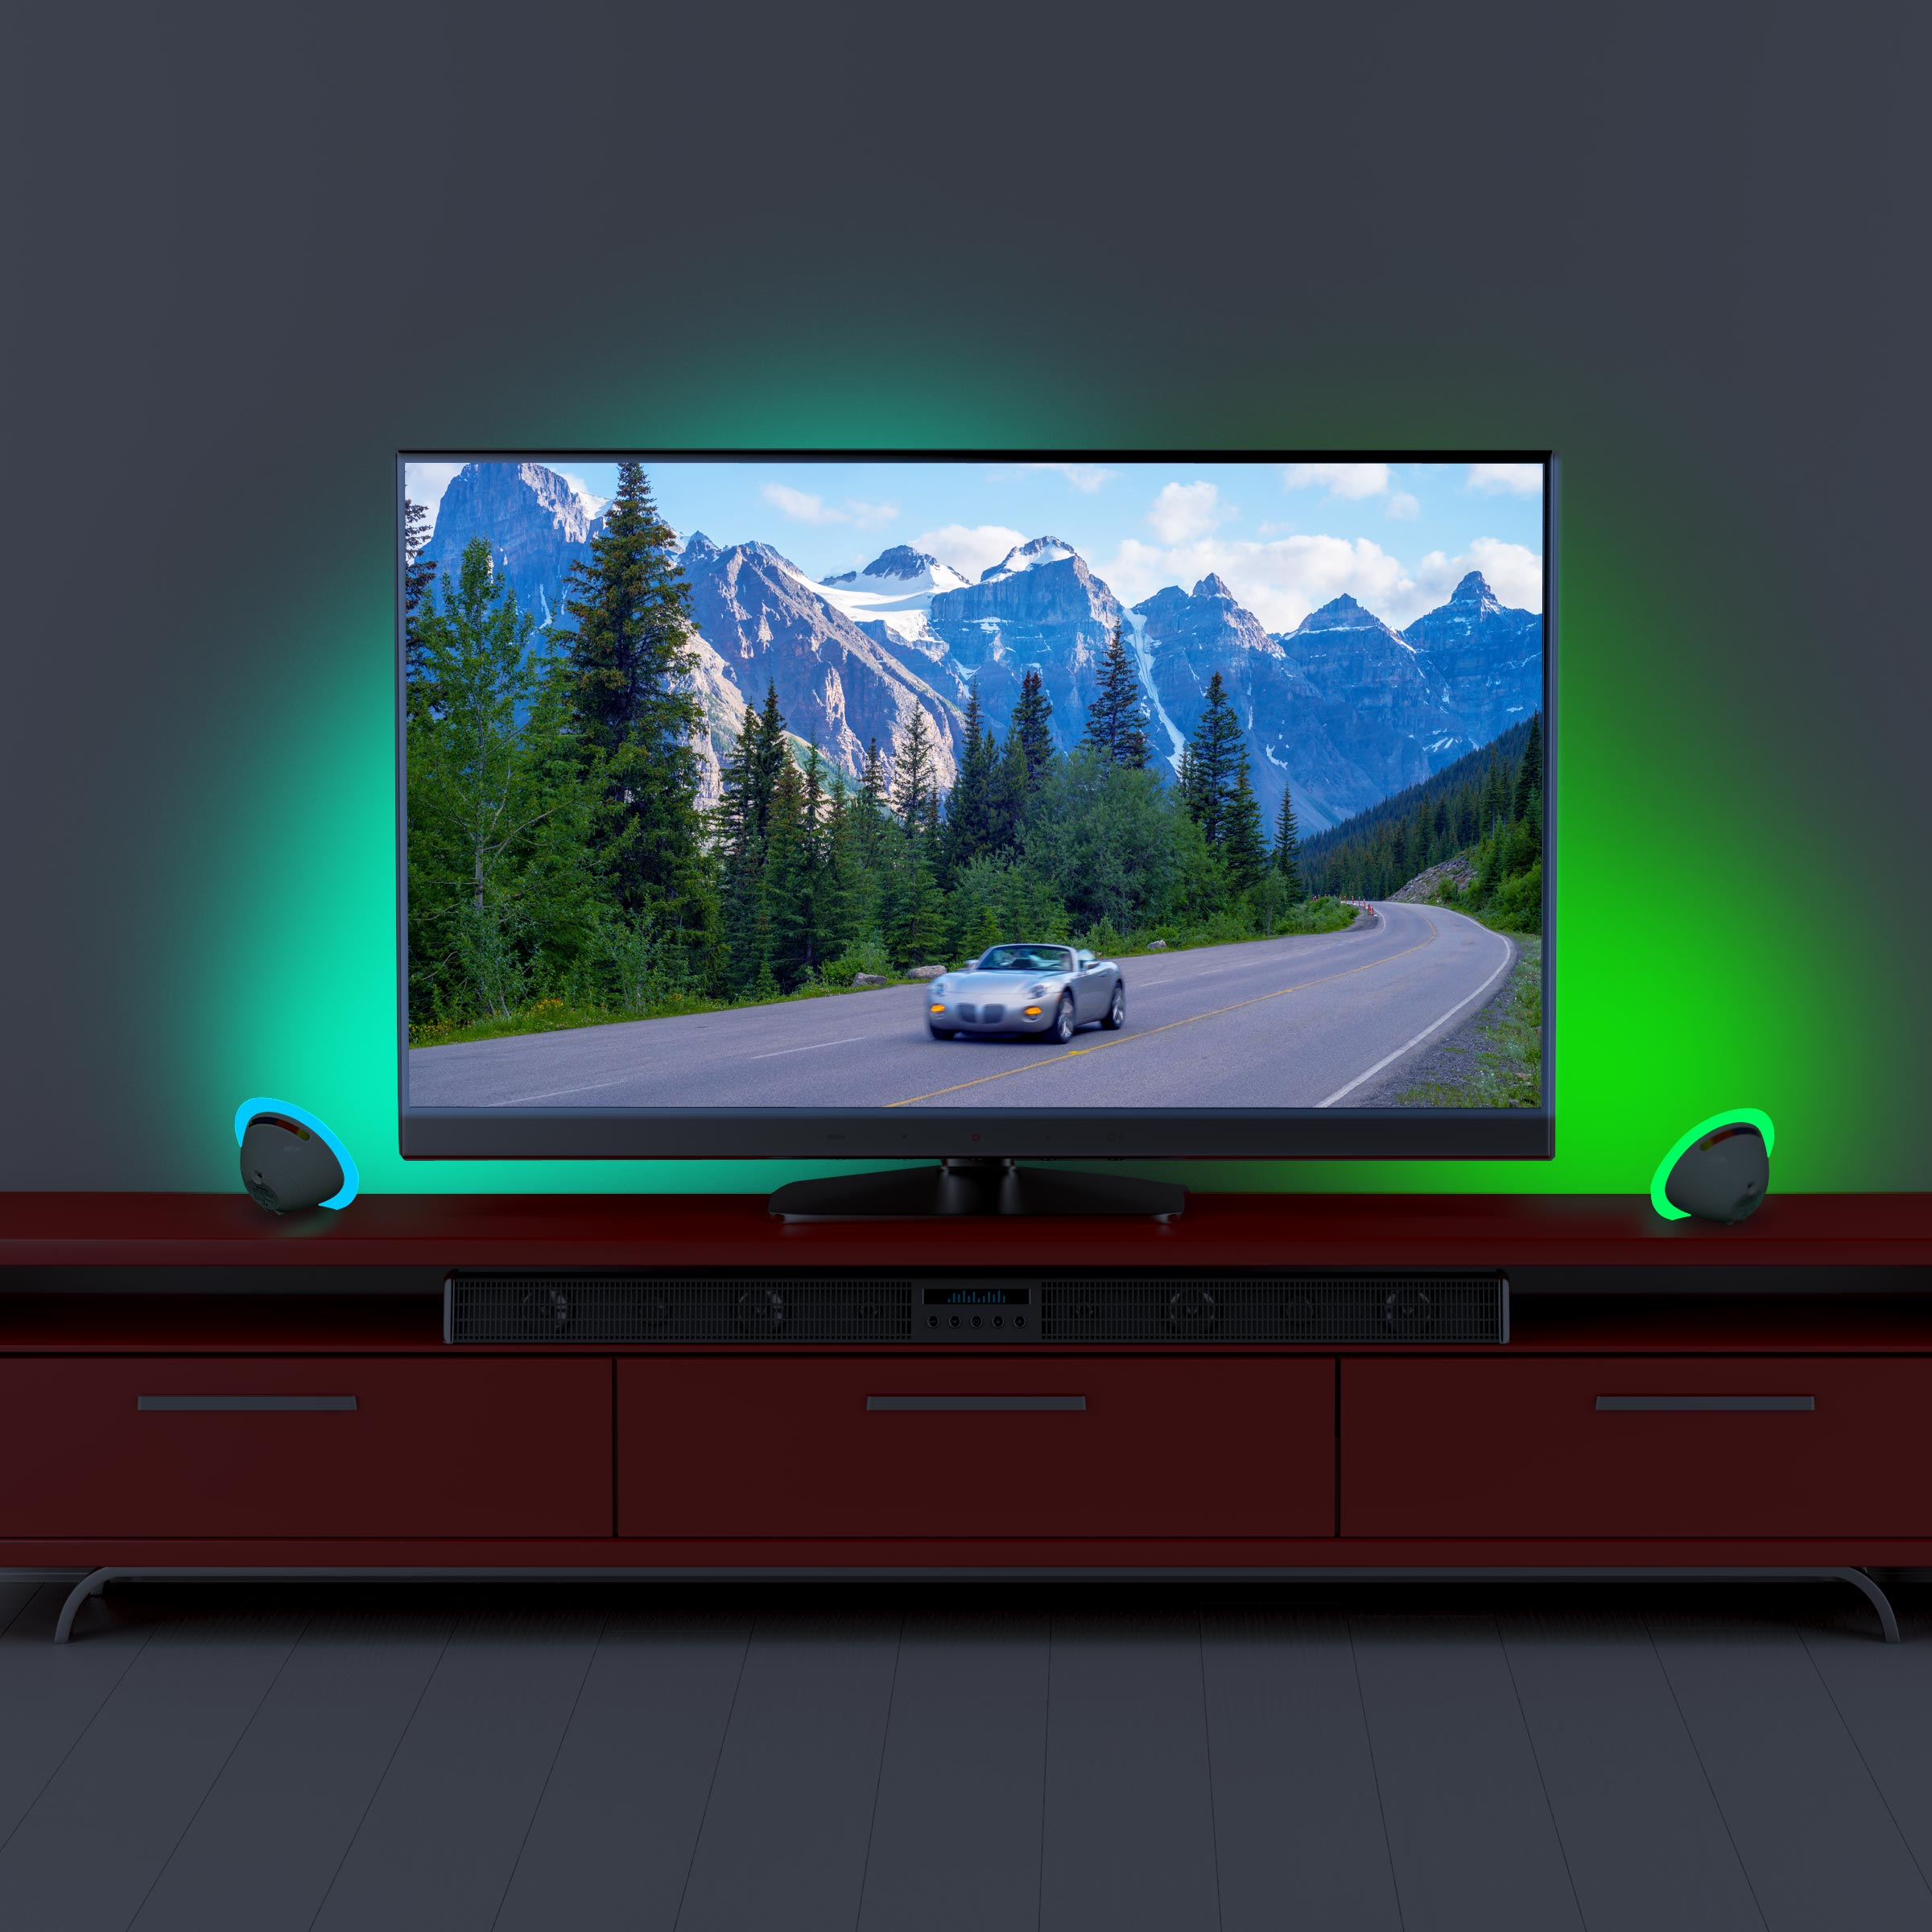 Multicolor LED Bias Lighting Backlight for TV & Computer Screen with 256 Colors & USB/Battery Power 2